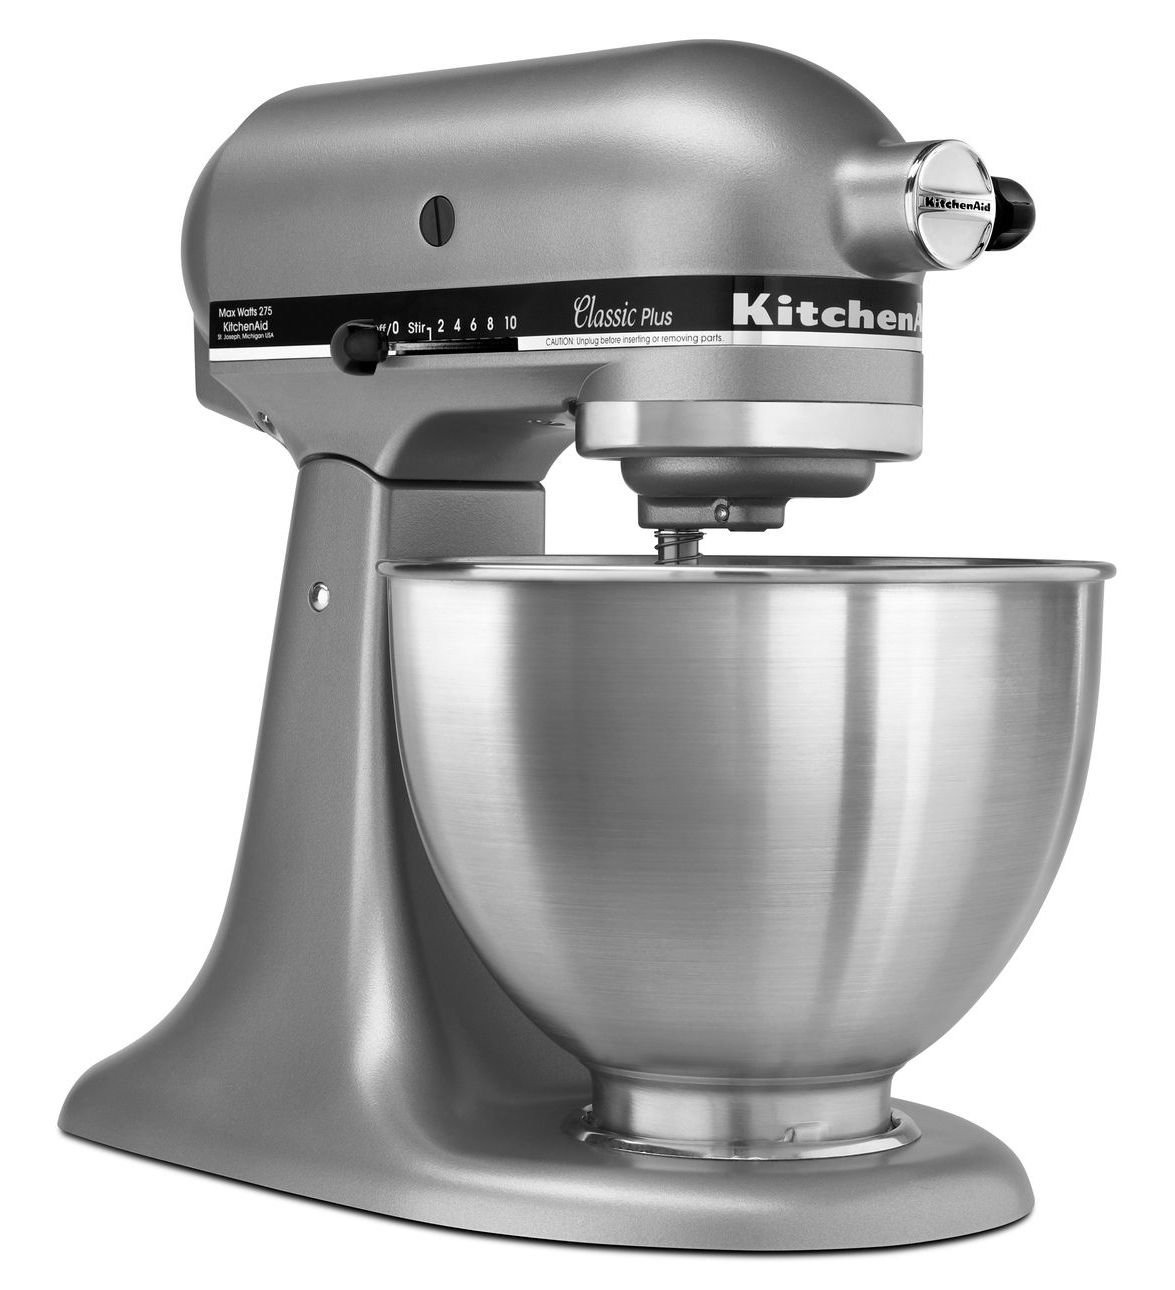 upright mixer kitchen artisan baking neat kitchenaid kensington ga raspberry colours stand or premium series with aide metallic ksmgbri pink ksm ice favorite engrossing